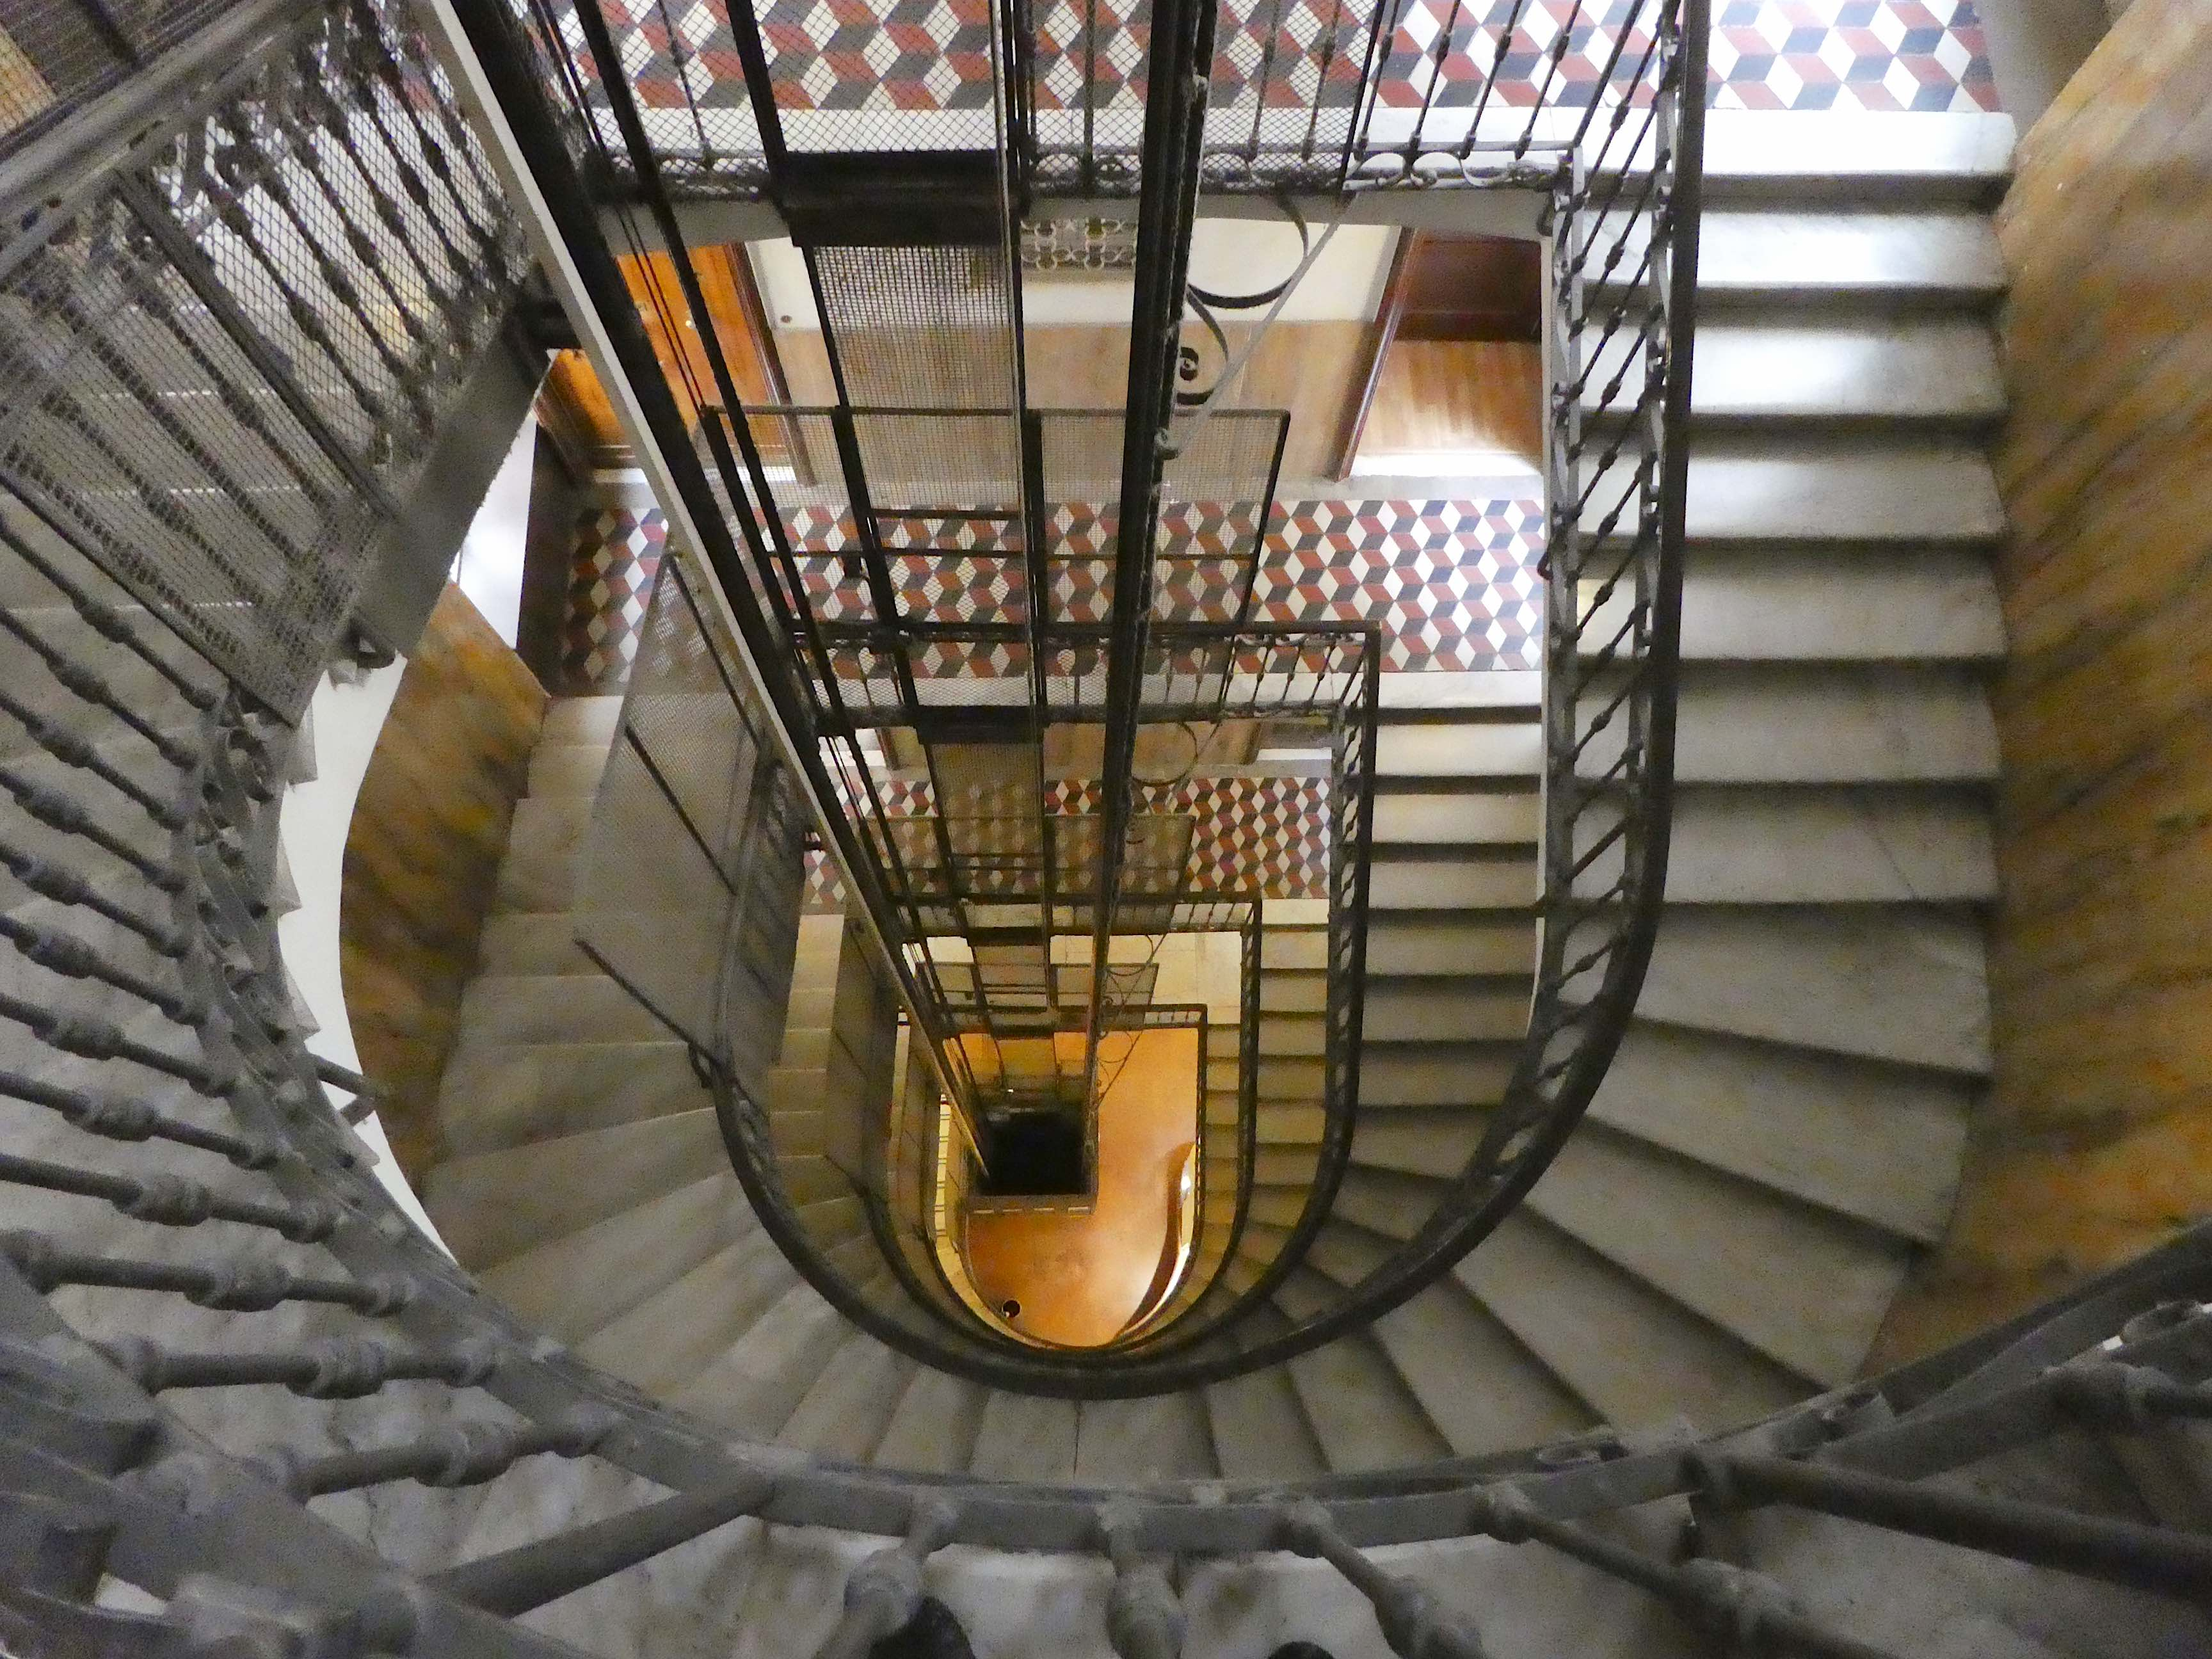 4.staircase looking down